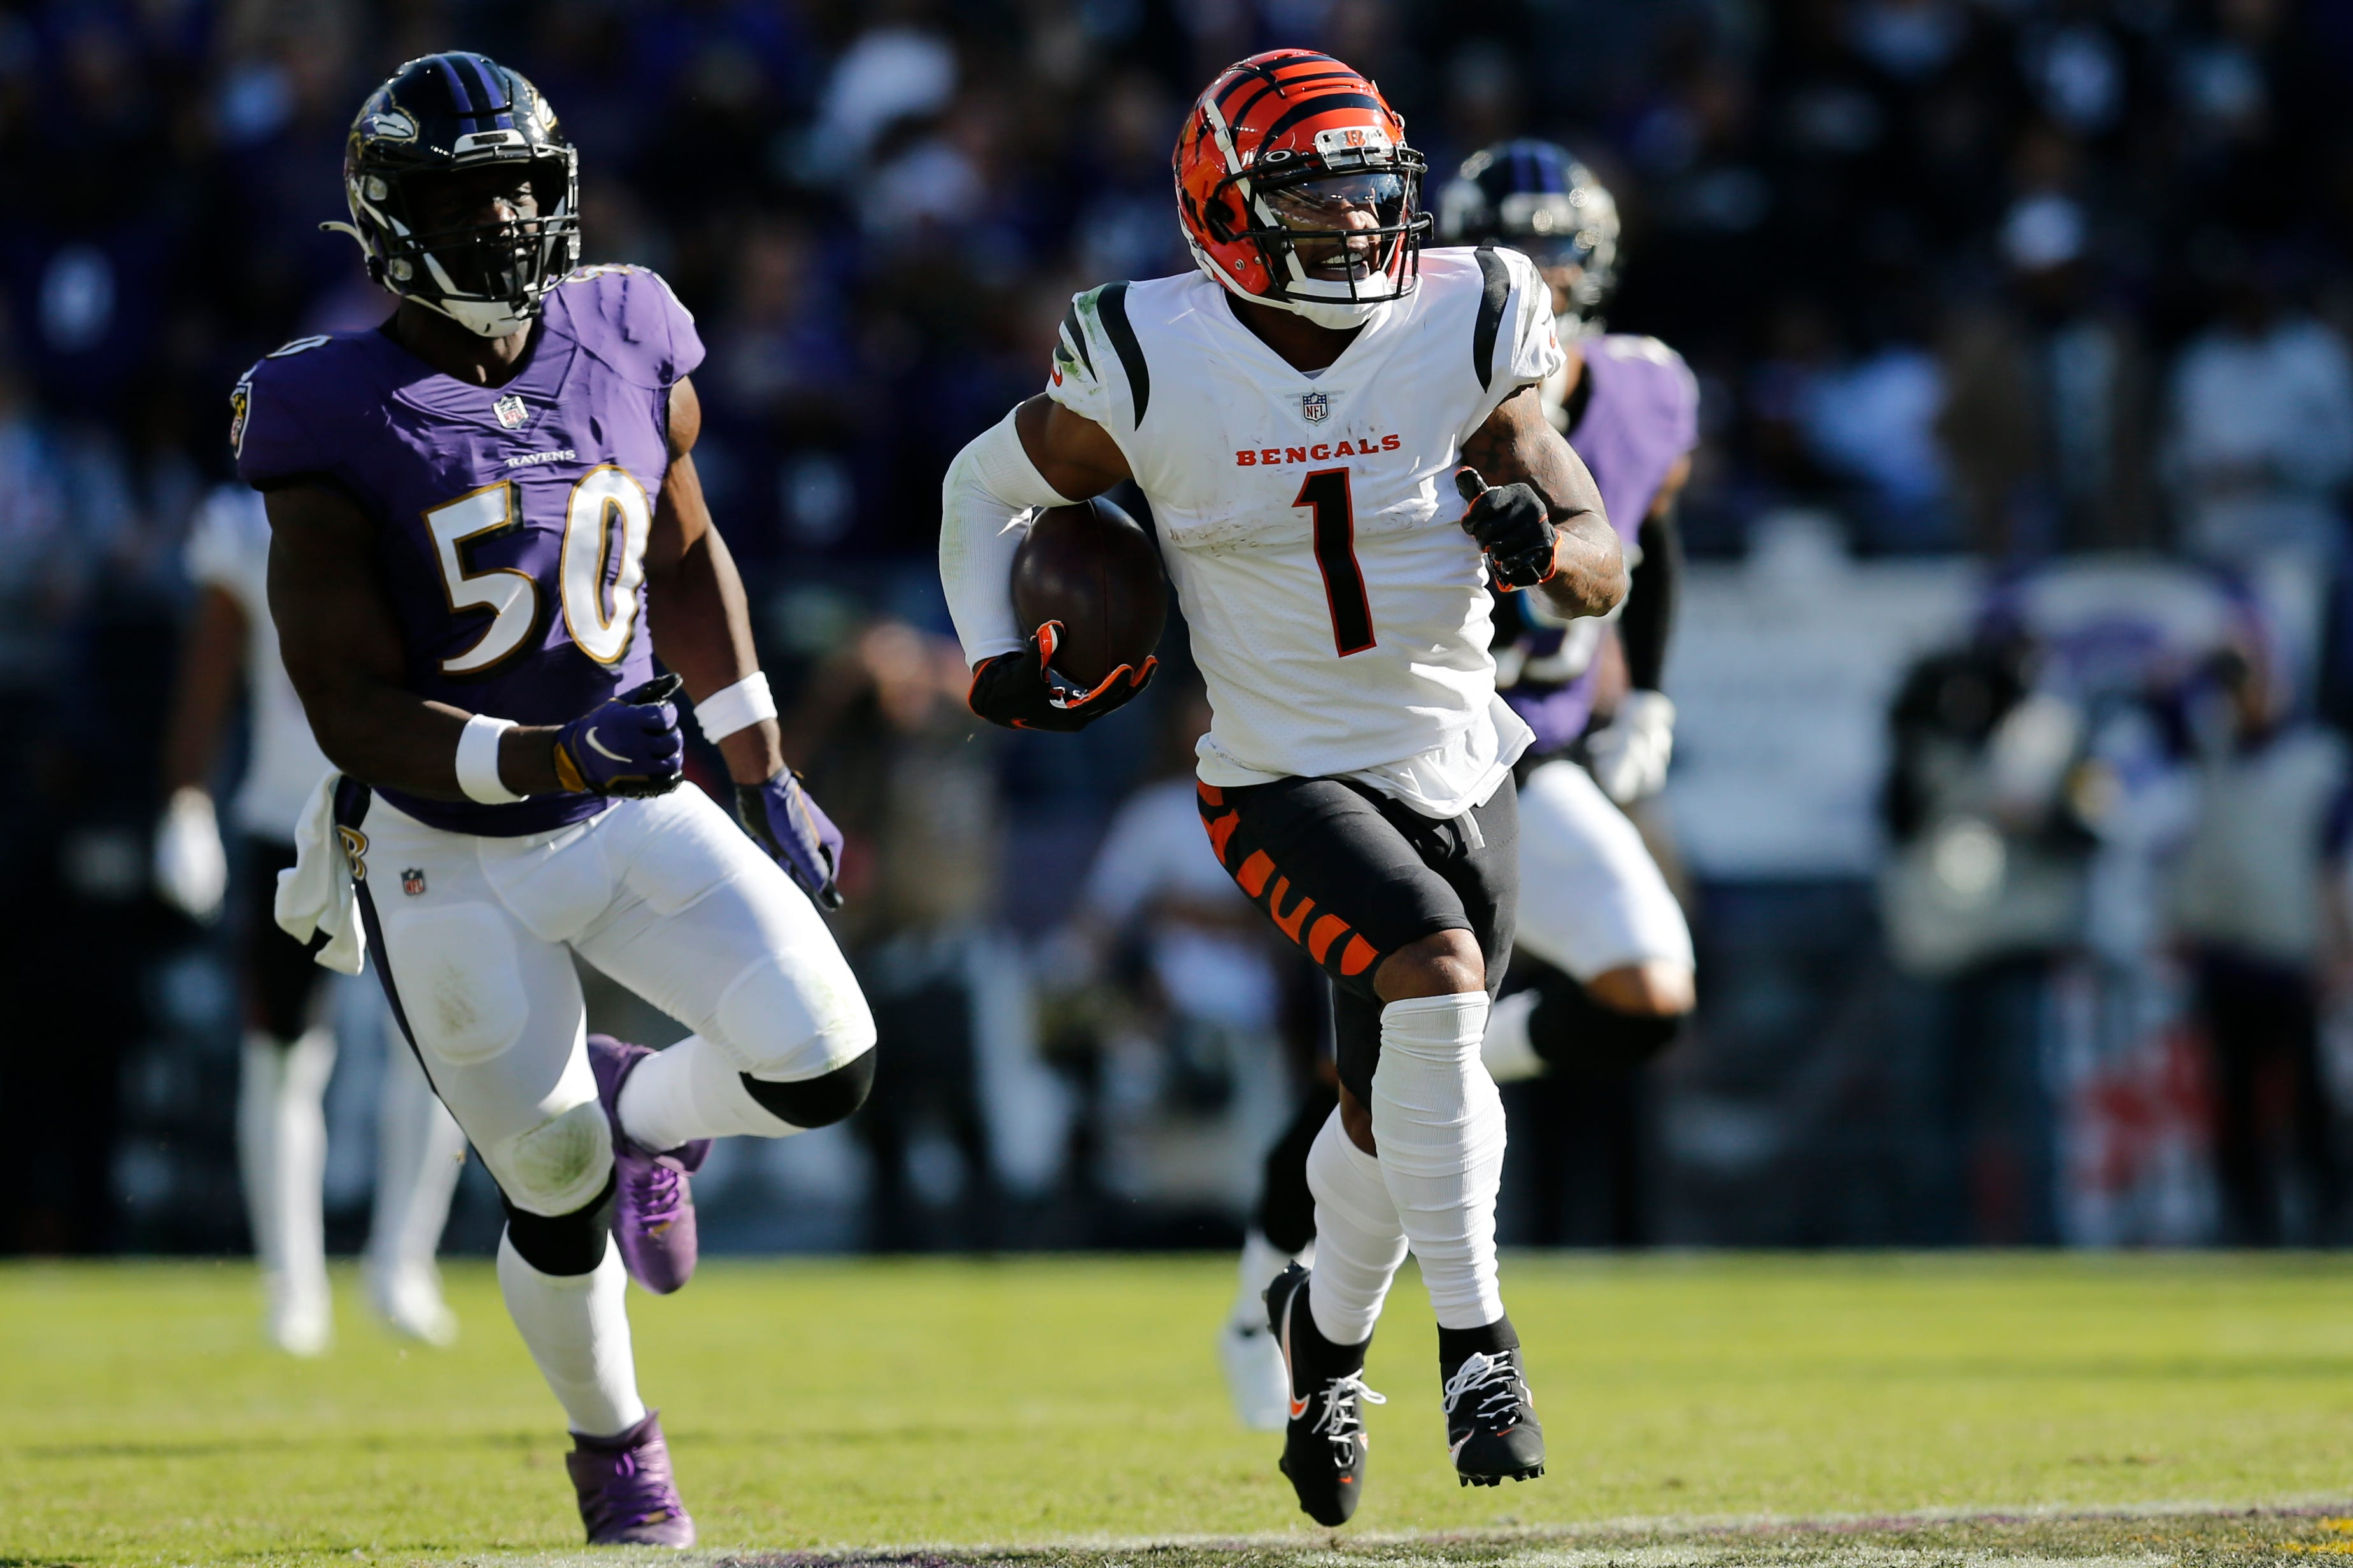 Bengals' Ja'Marr Chase sets NFL rookie record through seven games with 754 receiving yards